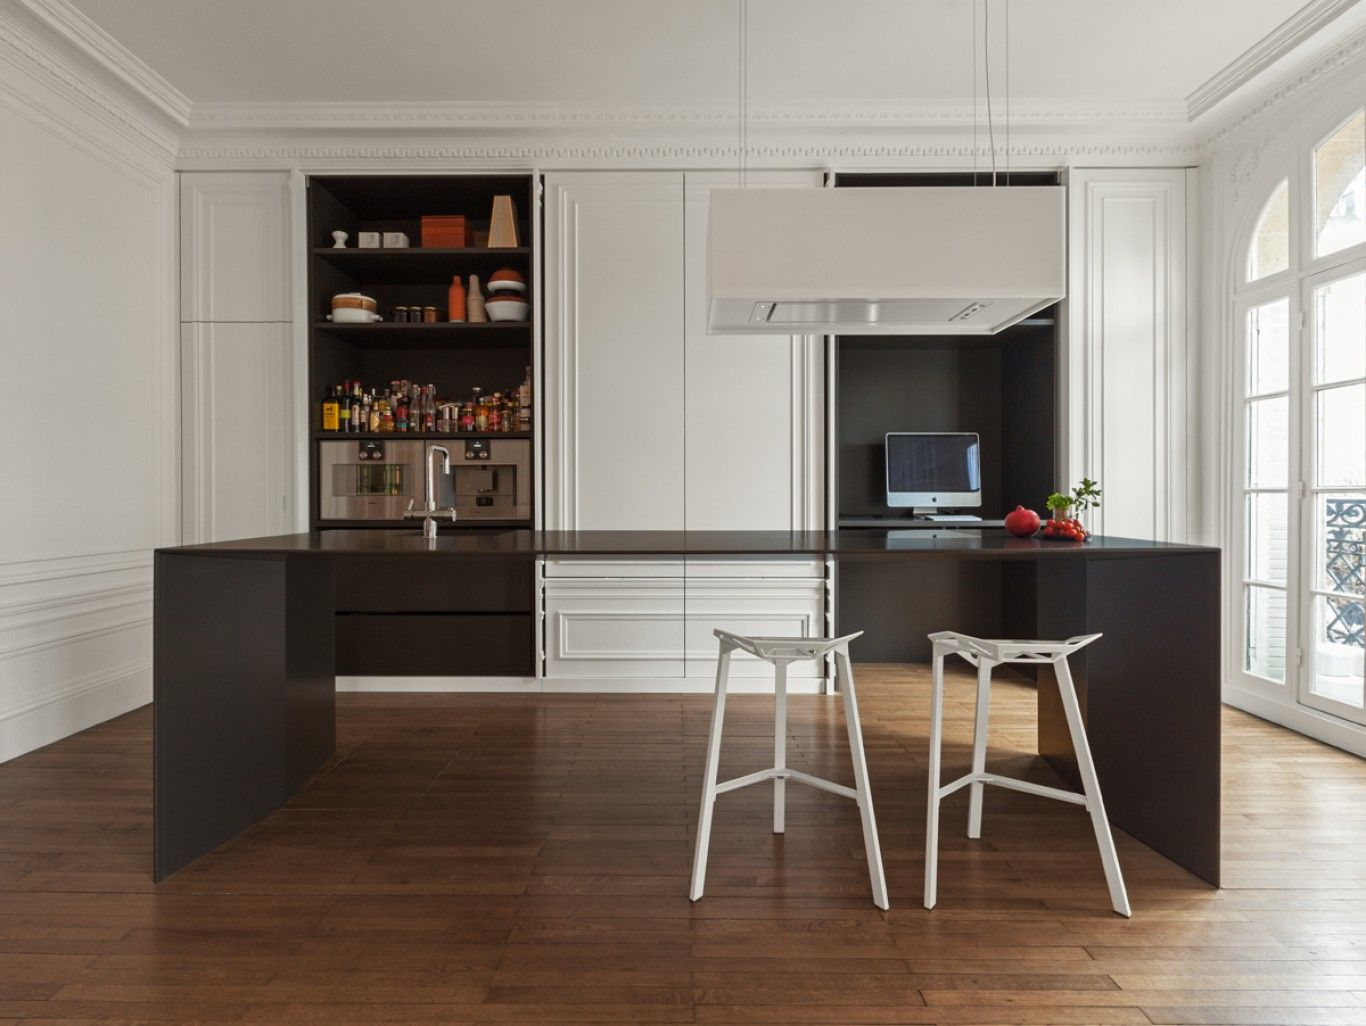 Invisible Kitchen by i29 interior architects (action shot!) | Living ...